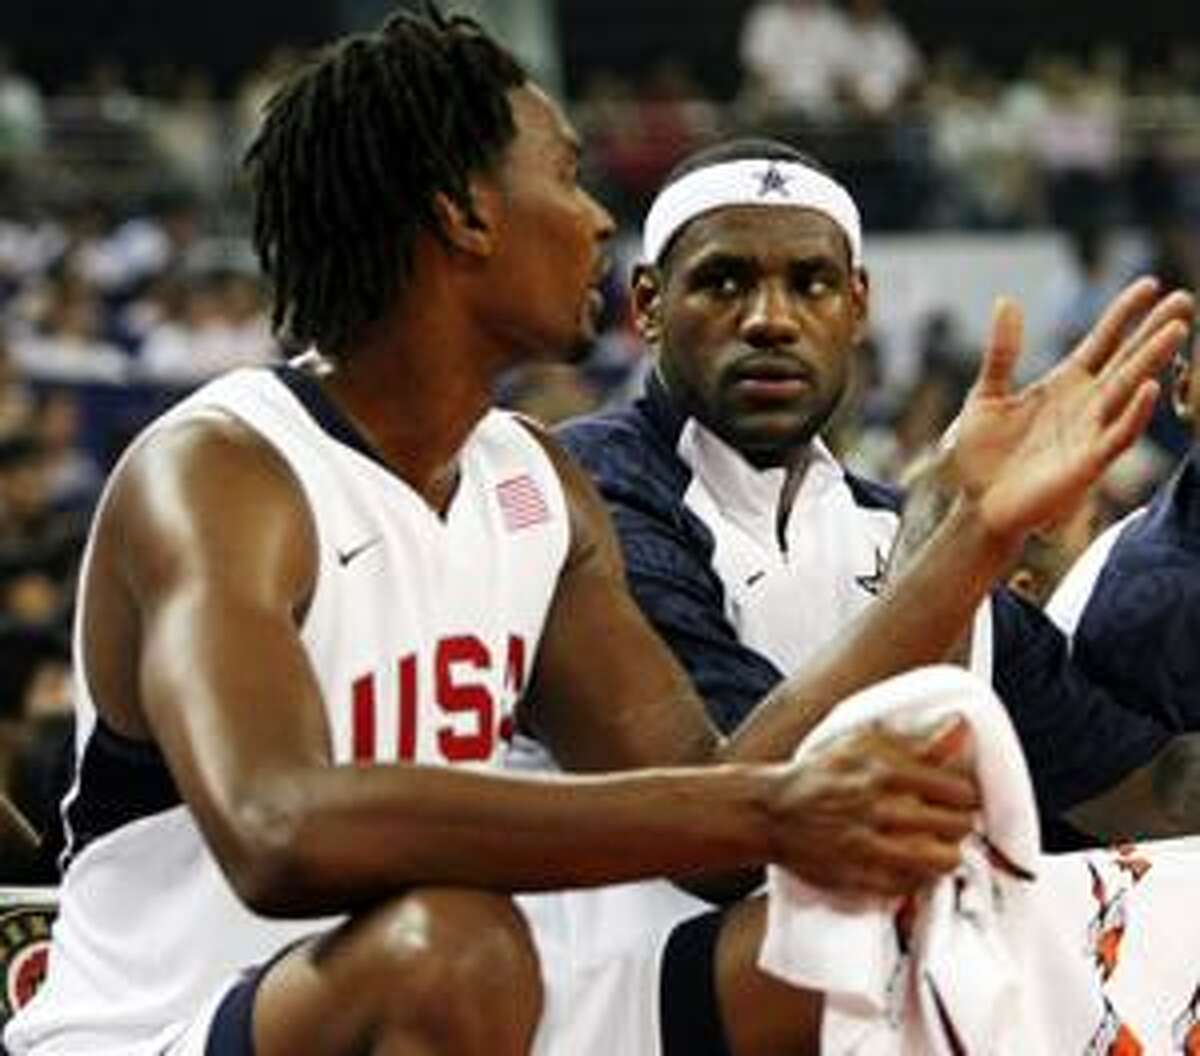 AP This Aug. 3, 2008, file photo shows Chris Bosh, left, and LeBron James, of the USA men's basketball team, chatting on the bench during a game between the USA and Russia in Shanghai. NBA free agency began today with James being the biggest prize of all.